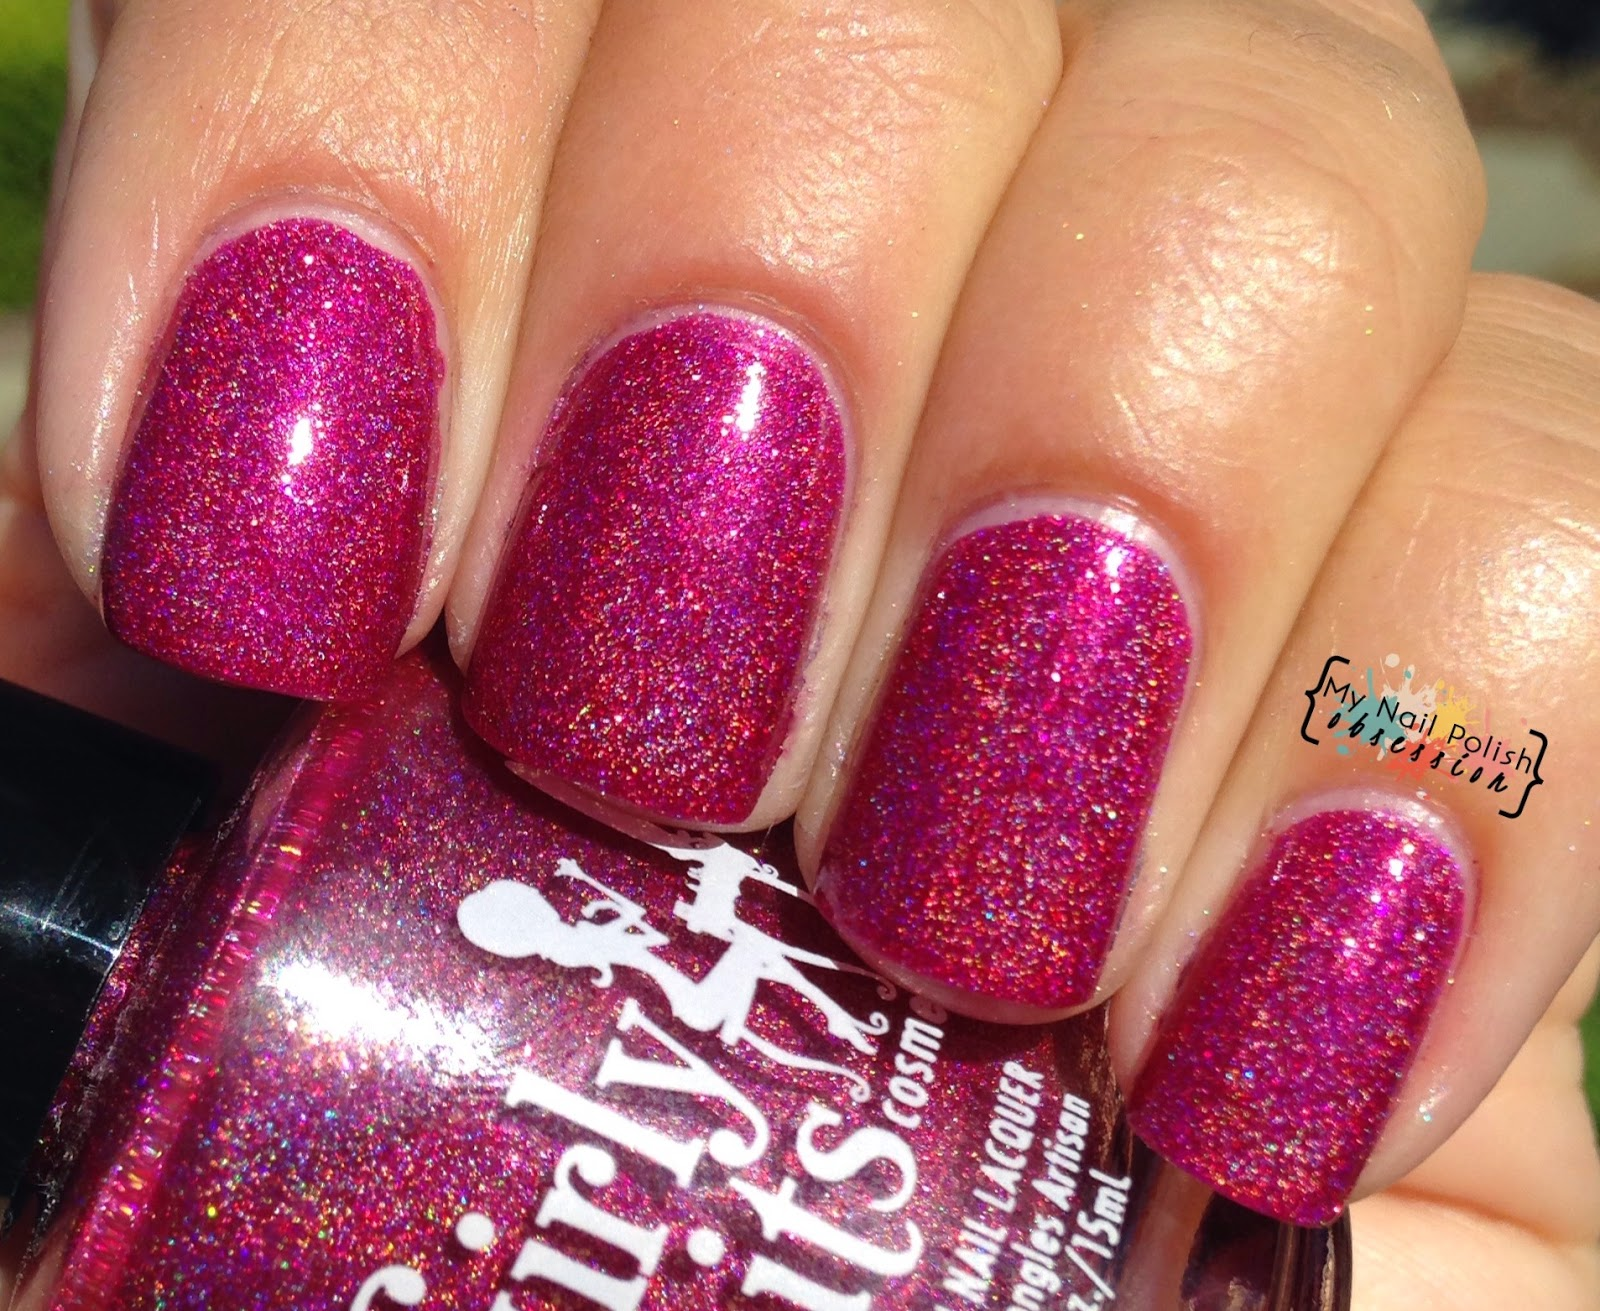 Girly Bits Too Hot For Pants